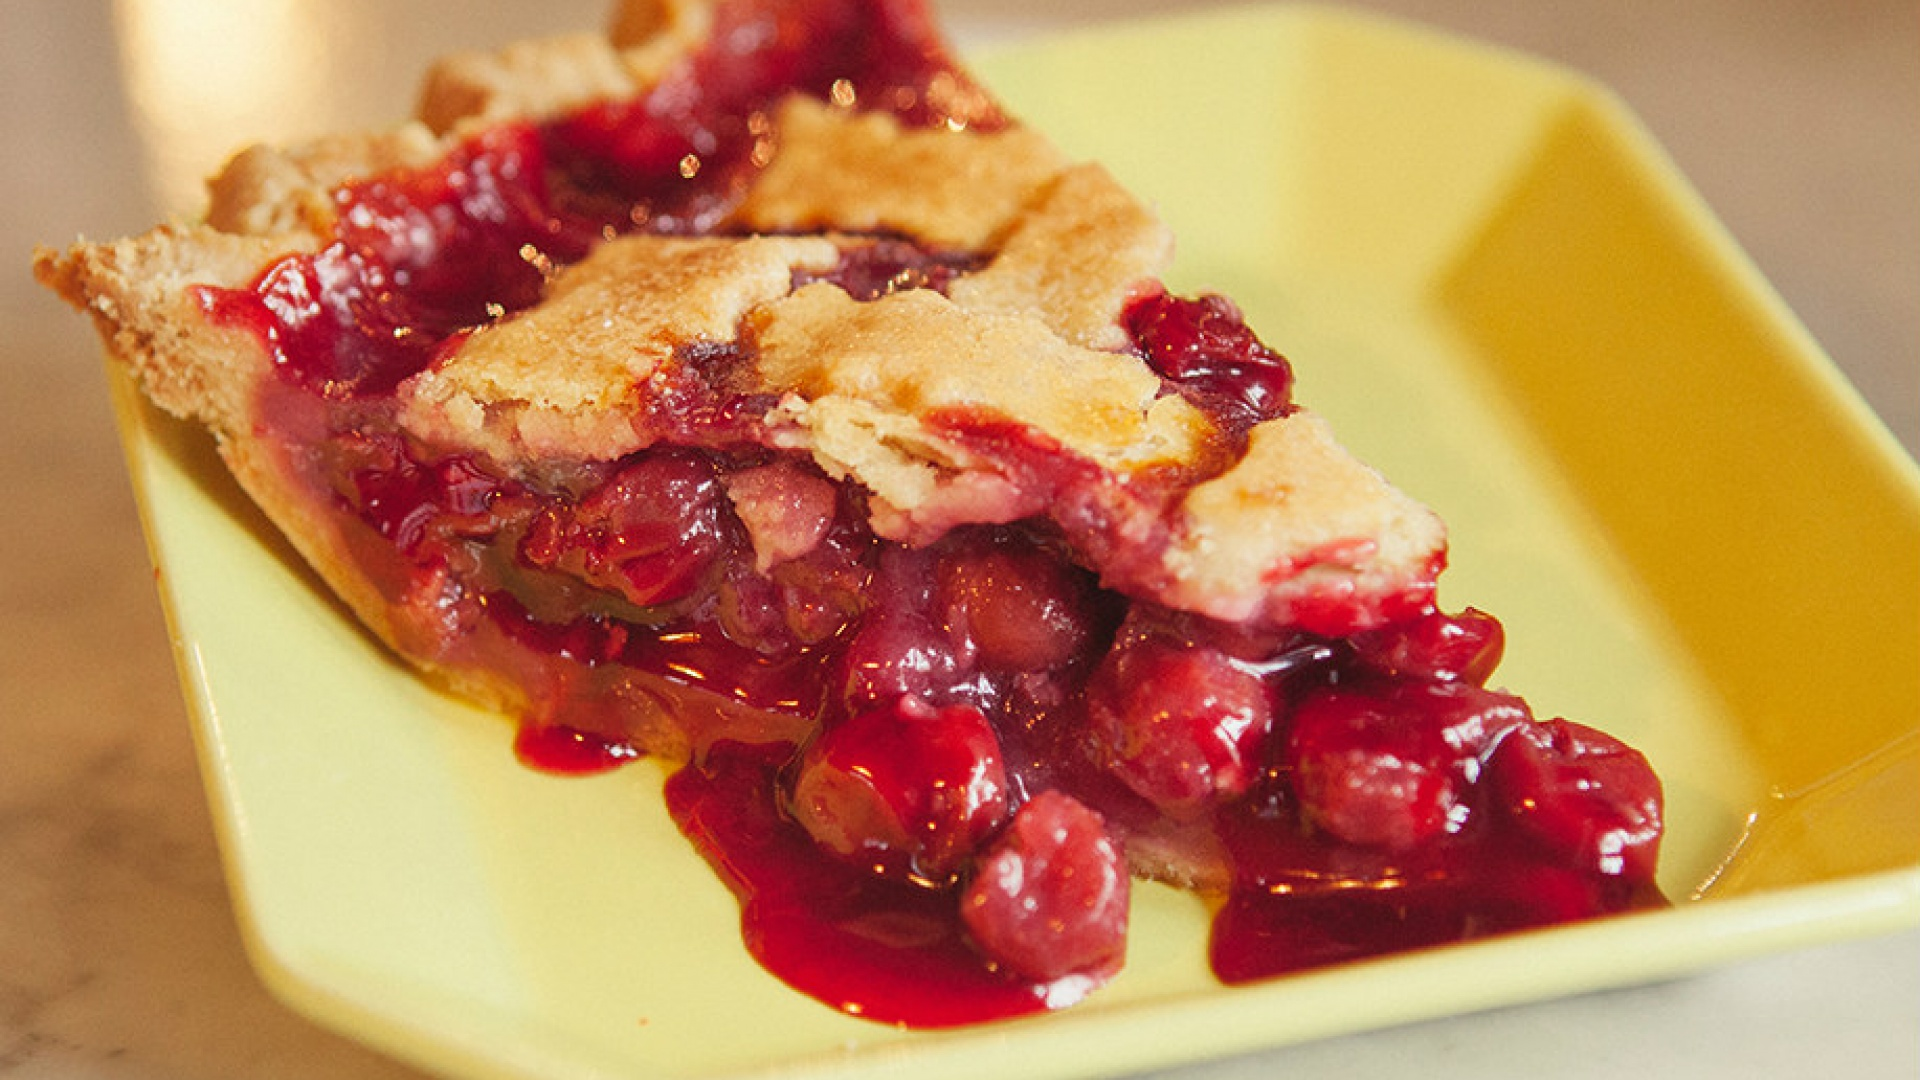 Top Six in the 6ix: Pie Slices